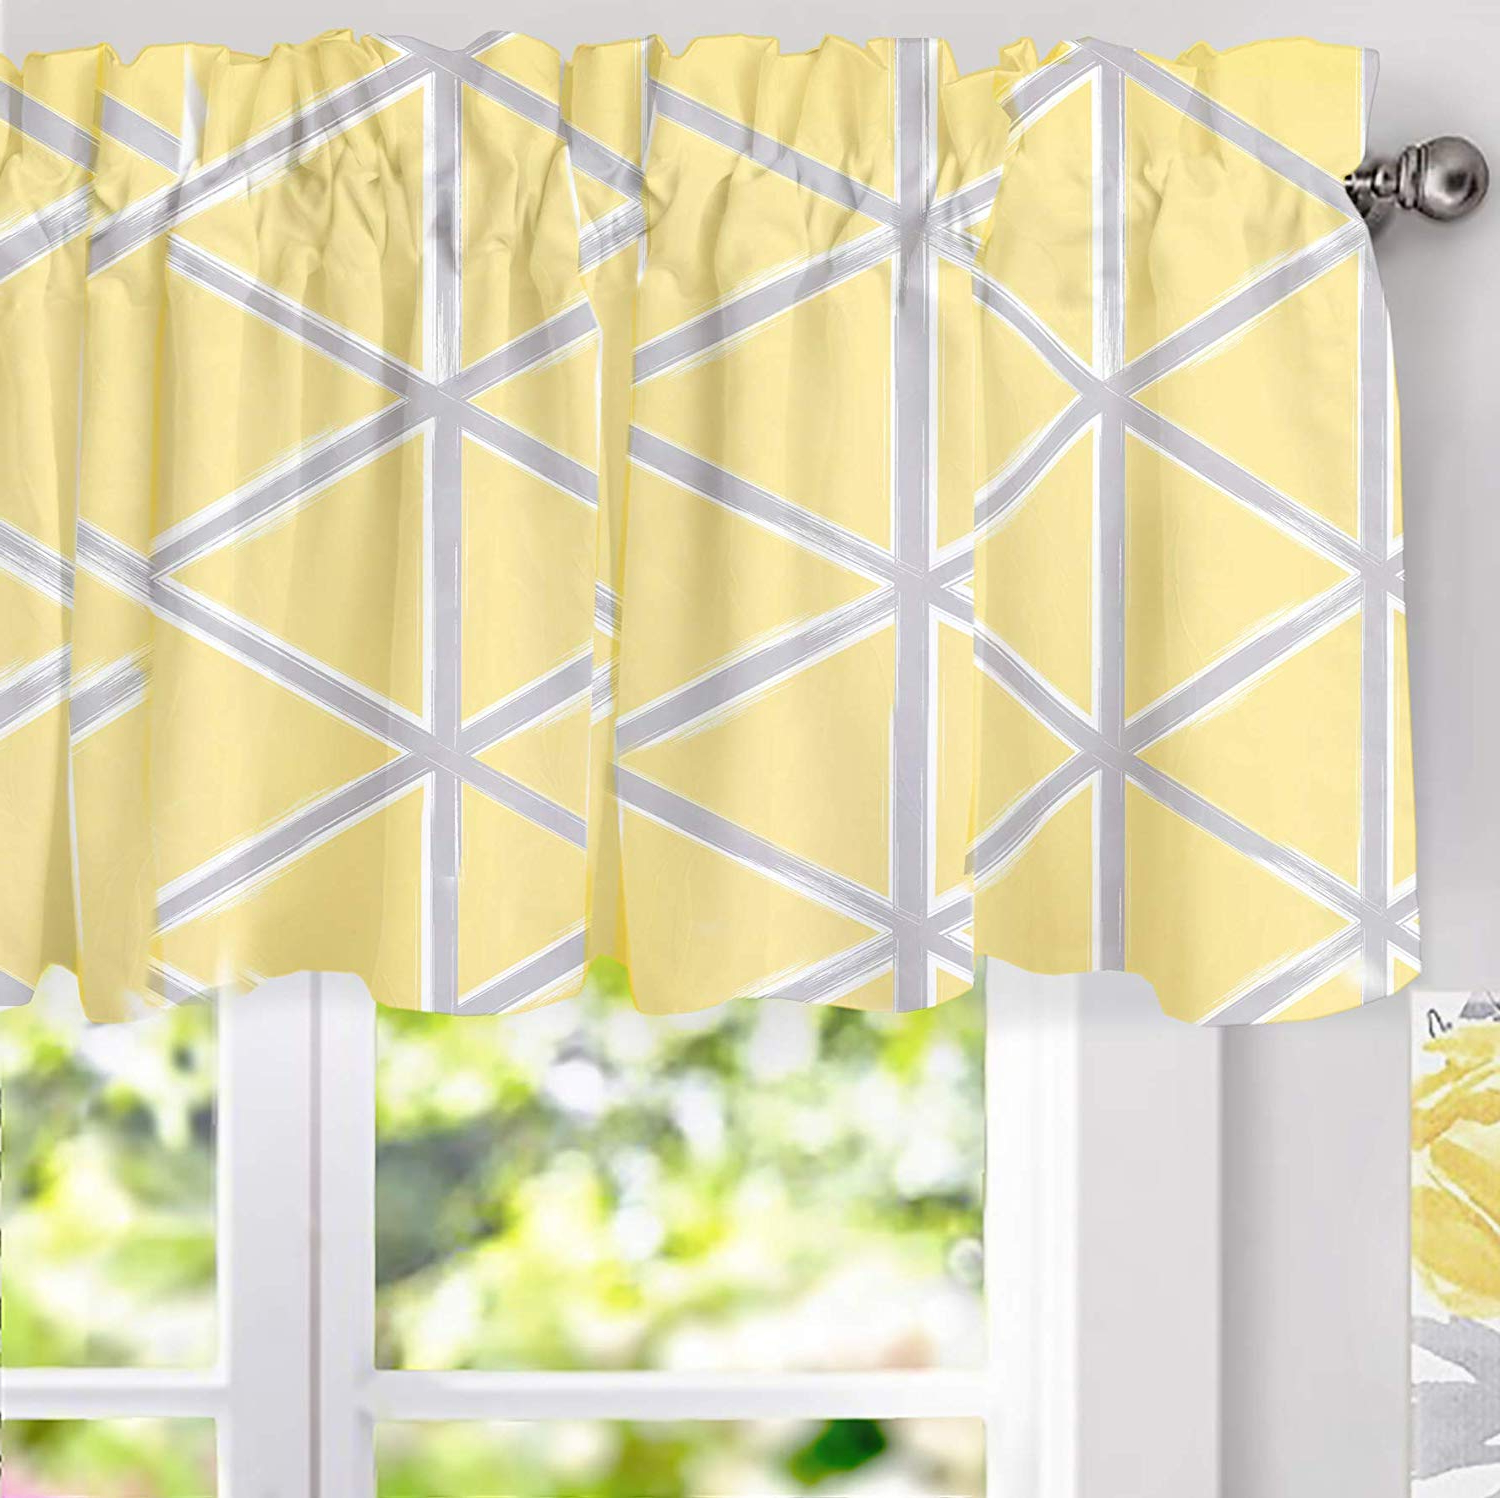 Driftaway Raymond Geometric Triangle Trellis Pattern Lined Thermal Insulated Energy Saving Window Curtain Valance For Living Room 2 Layers 52 Inch Regarding Widely Used Trellis Pattern Window Valances (View 15 of 20)